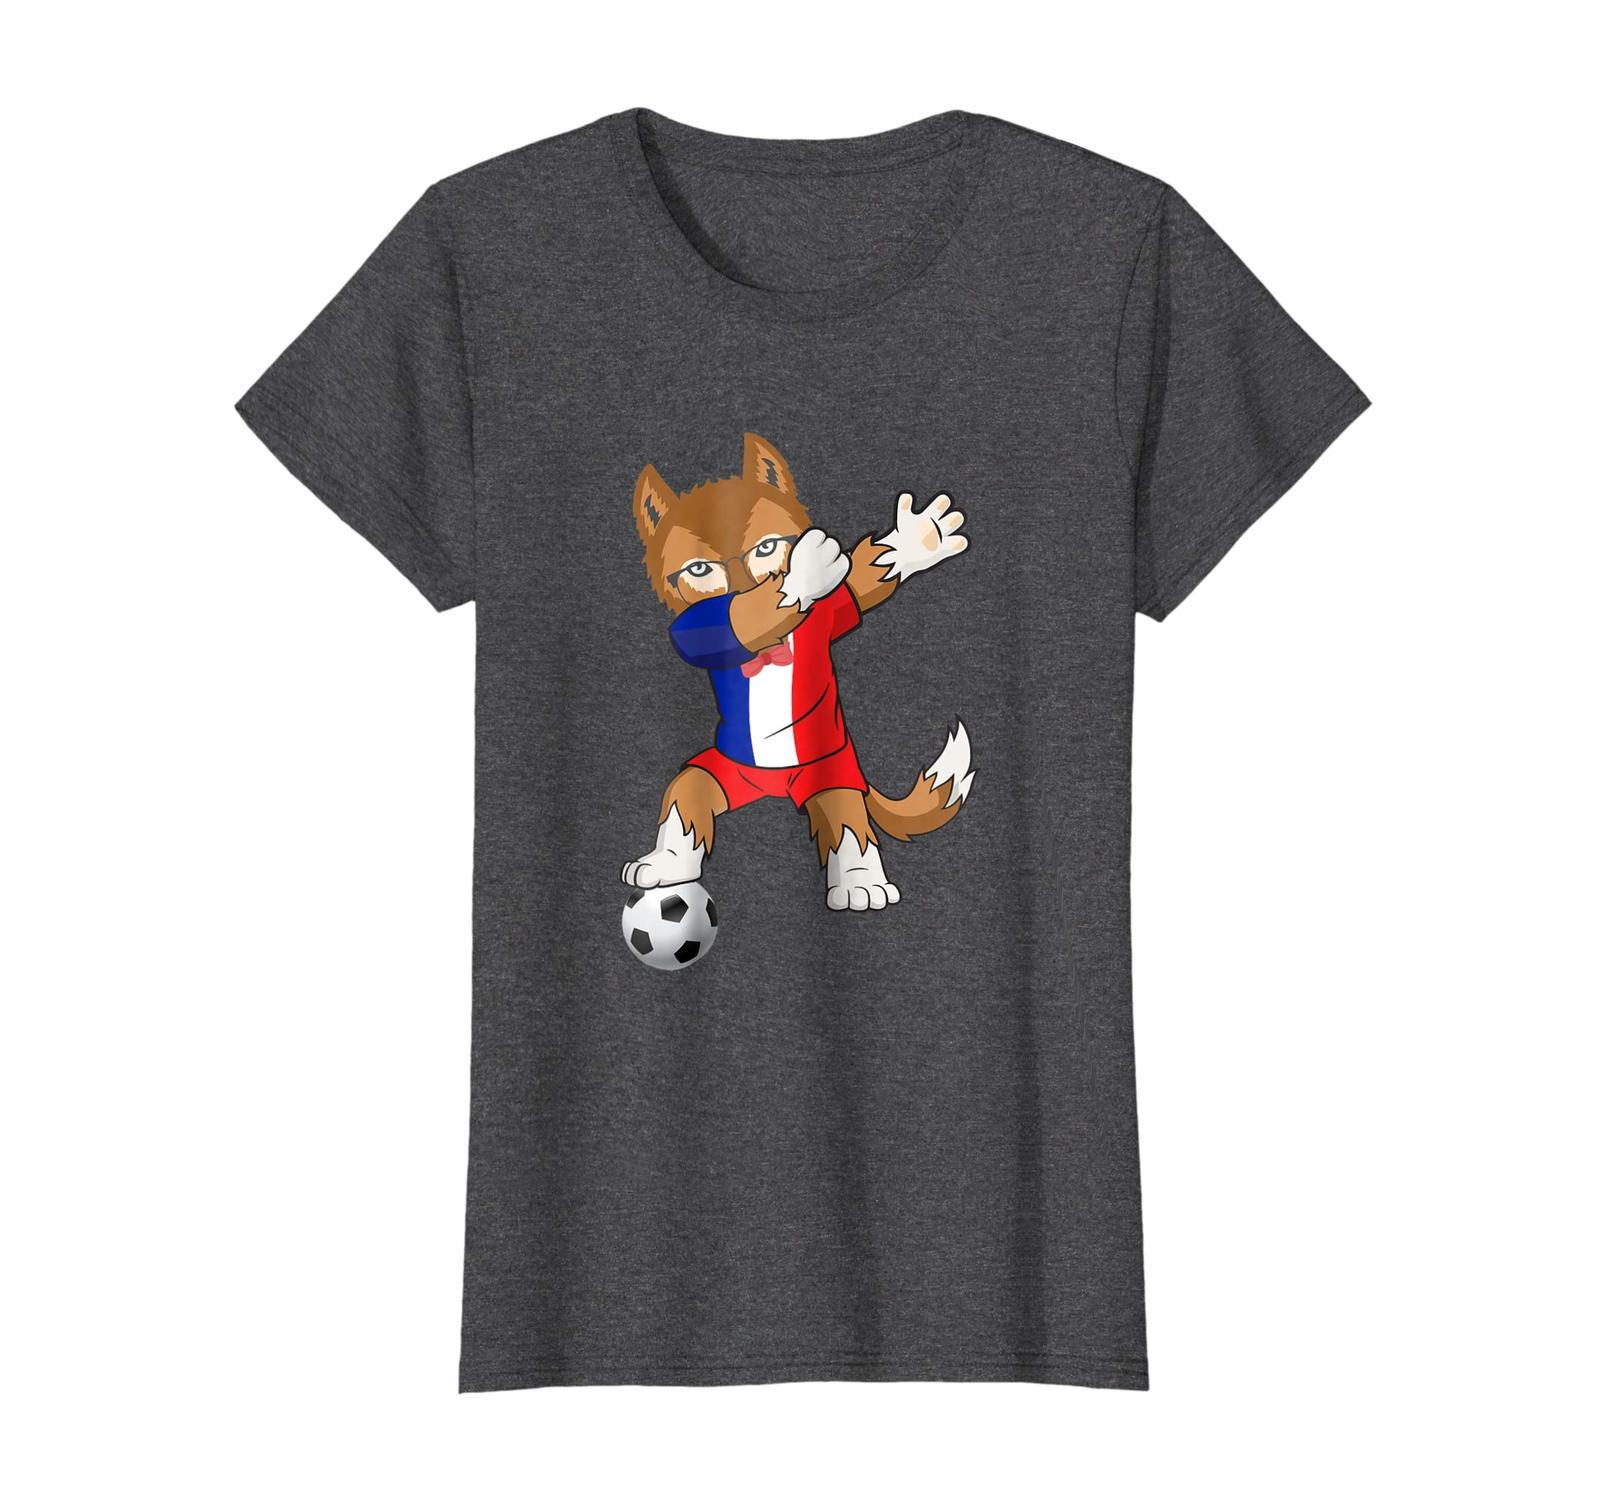 Brother Shirts - France Soccer Jersey 2018 World Football Cup T-Shirt Flag Wowen